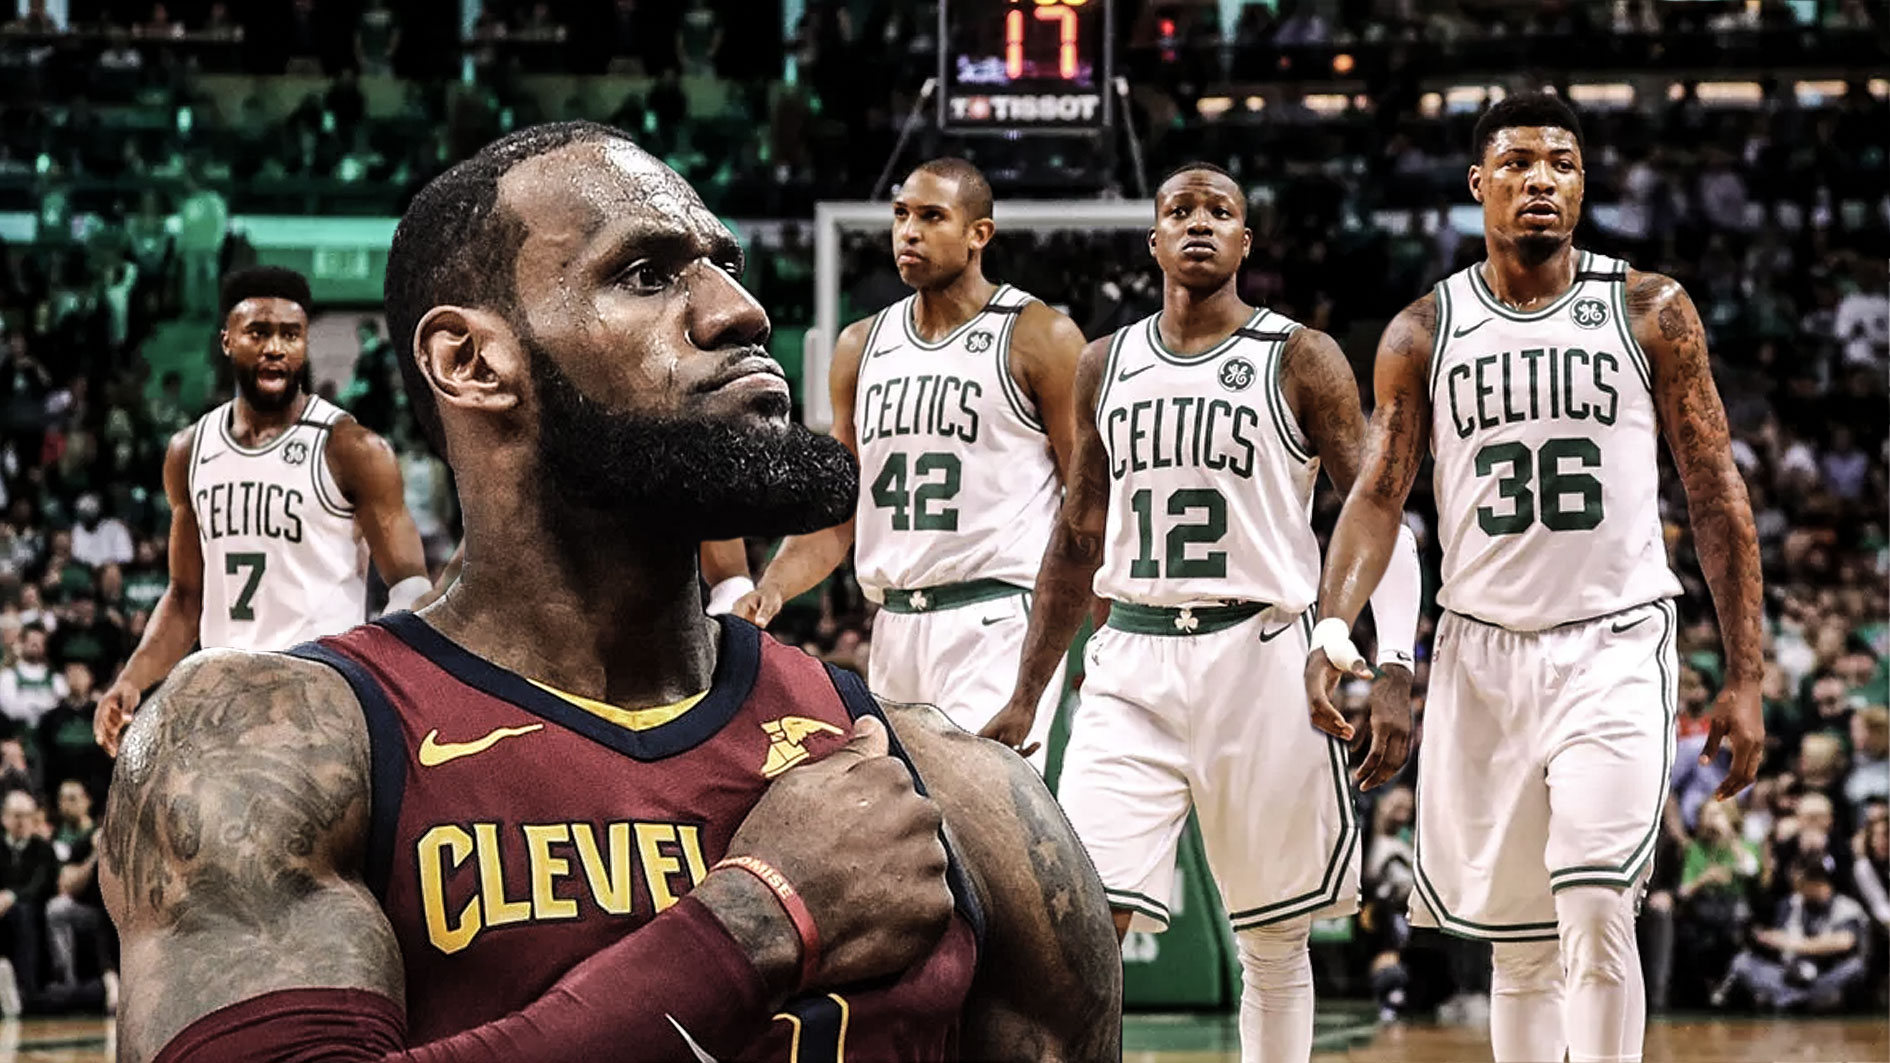 LeBron-James-is-ready-for-challenge-of-facing-undefeated-at-home-Celtics